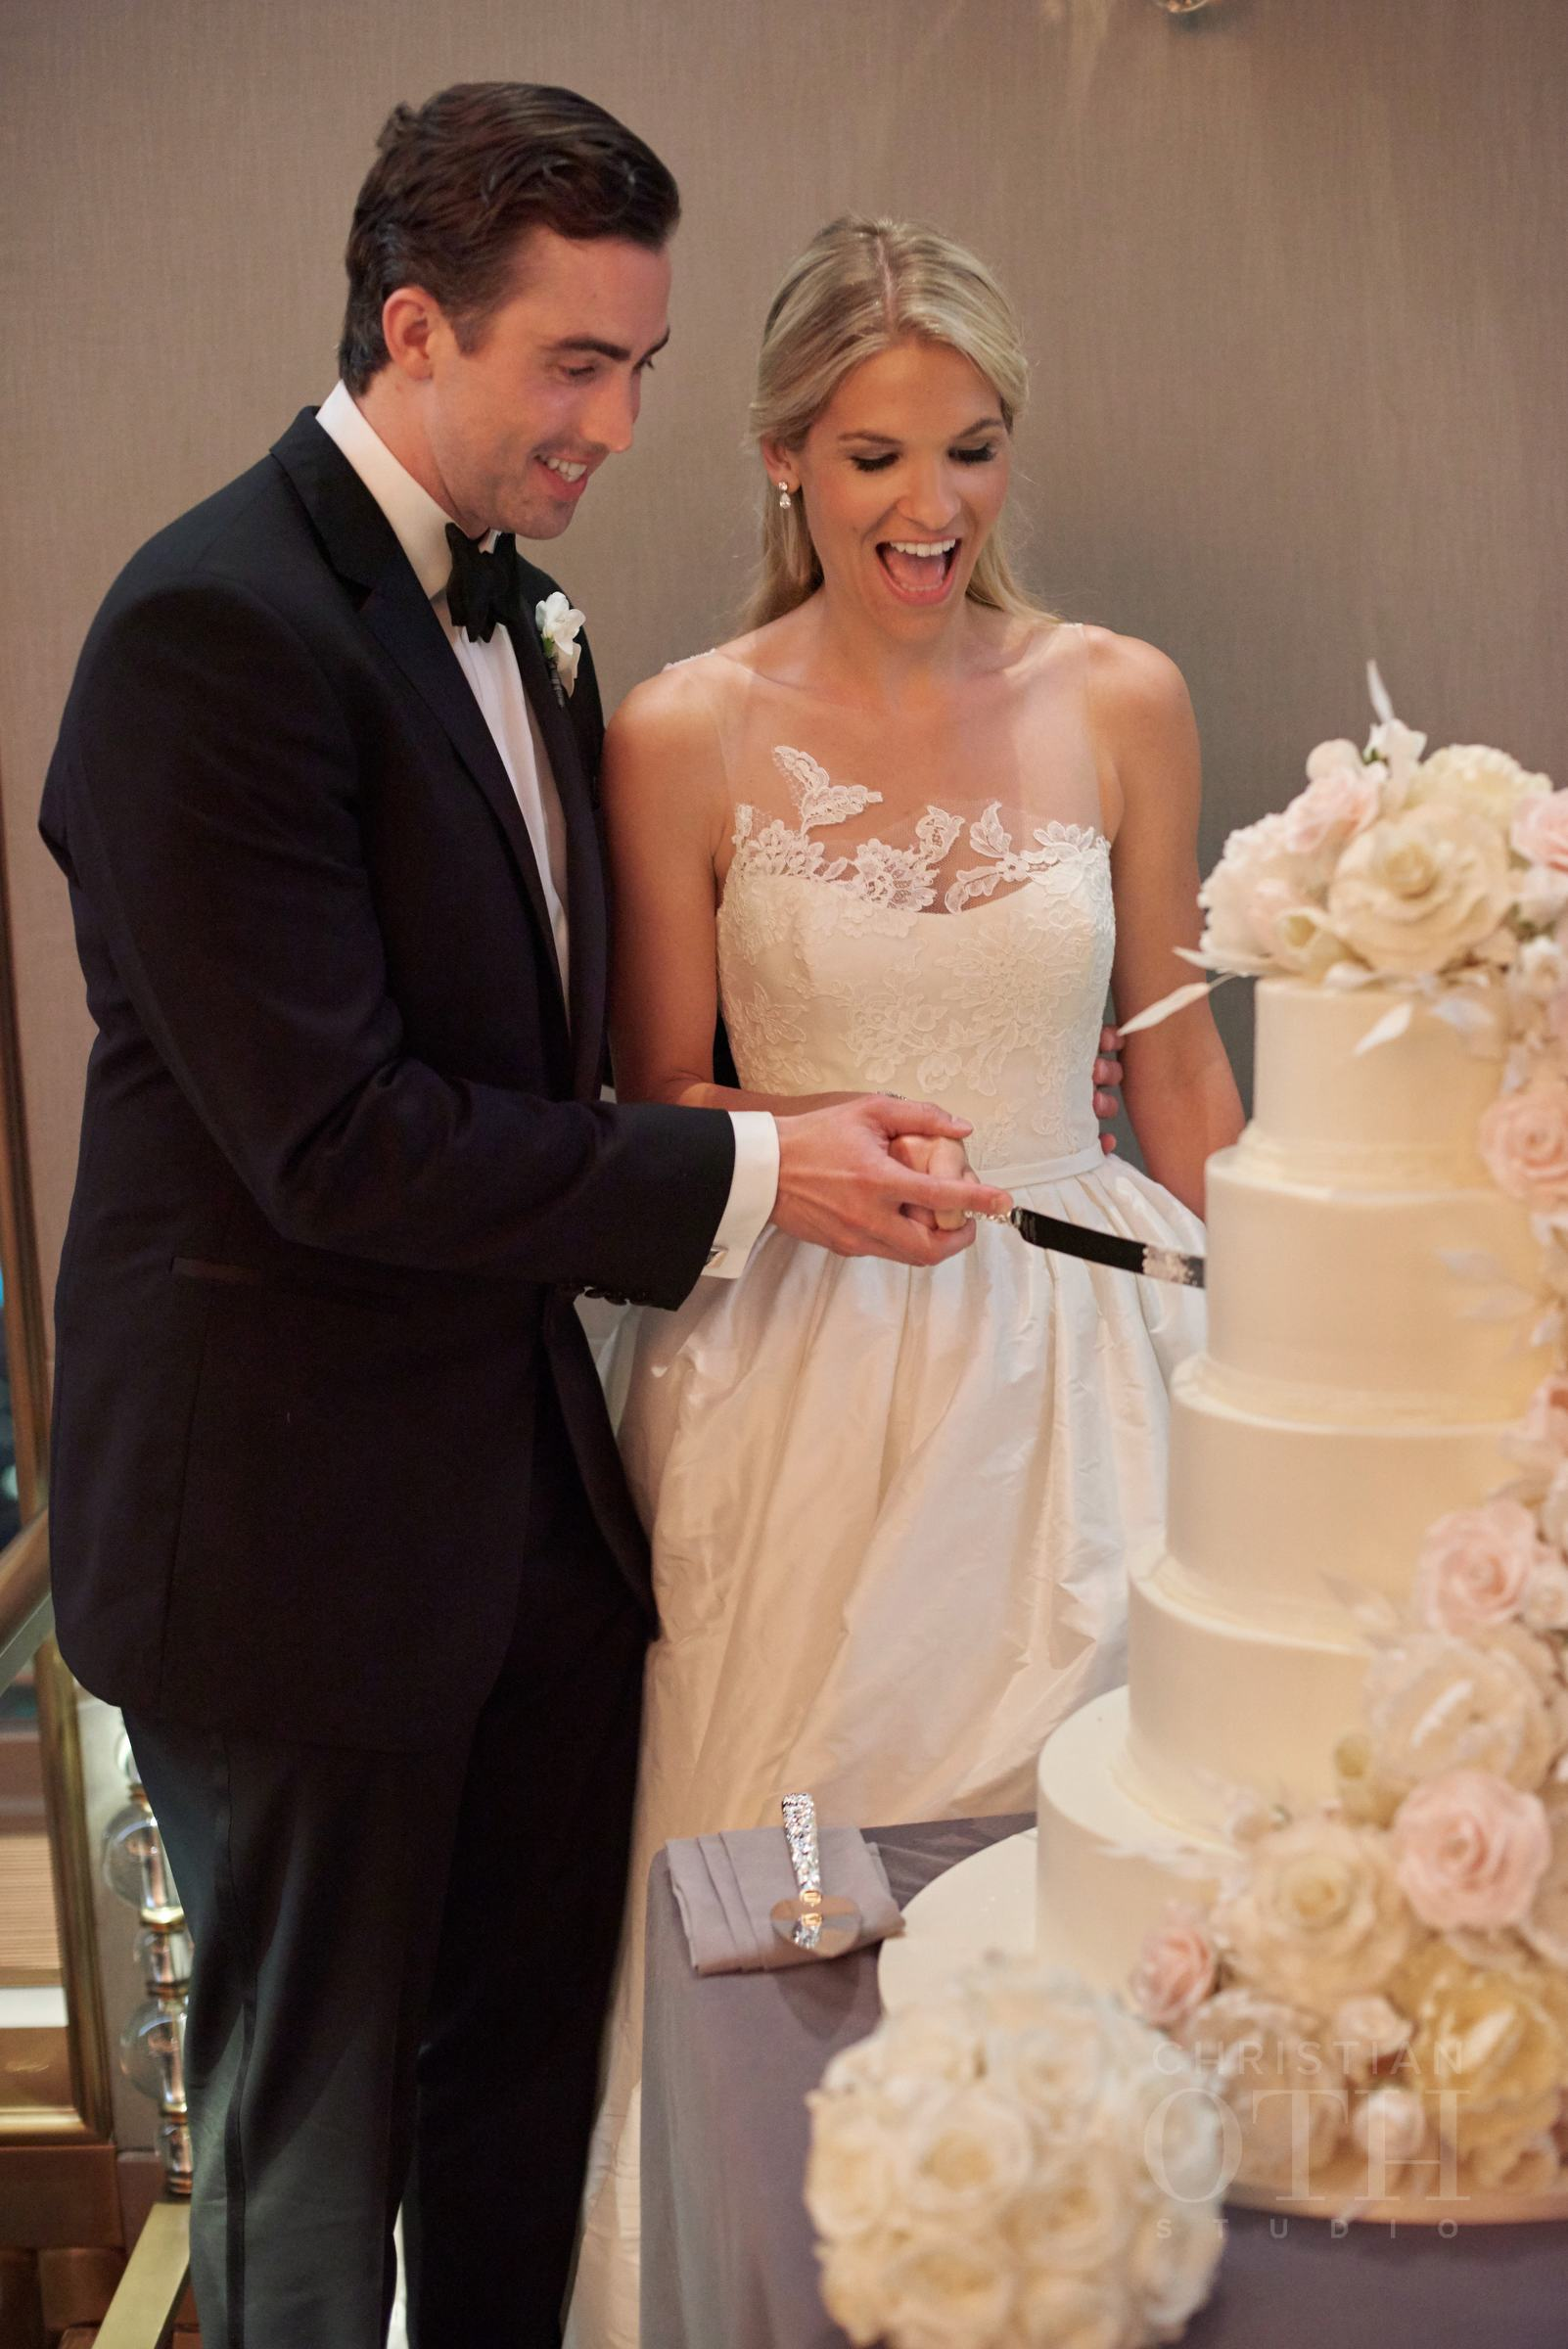 Cake Cutting.  Photo by Christian Oth Studio.